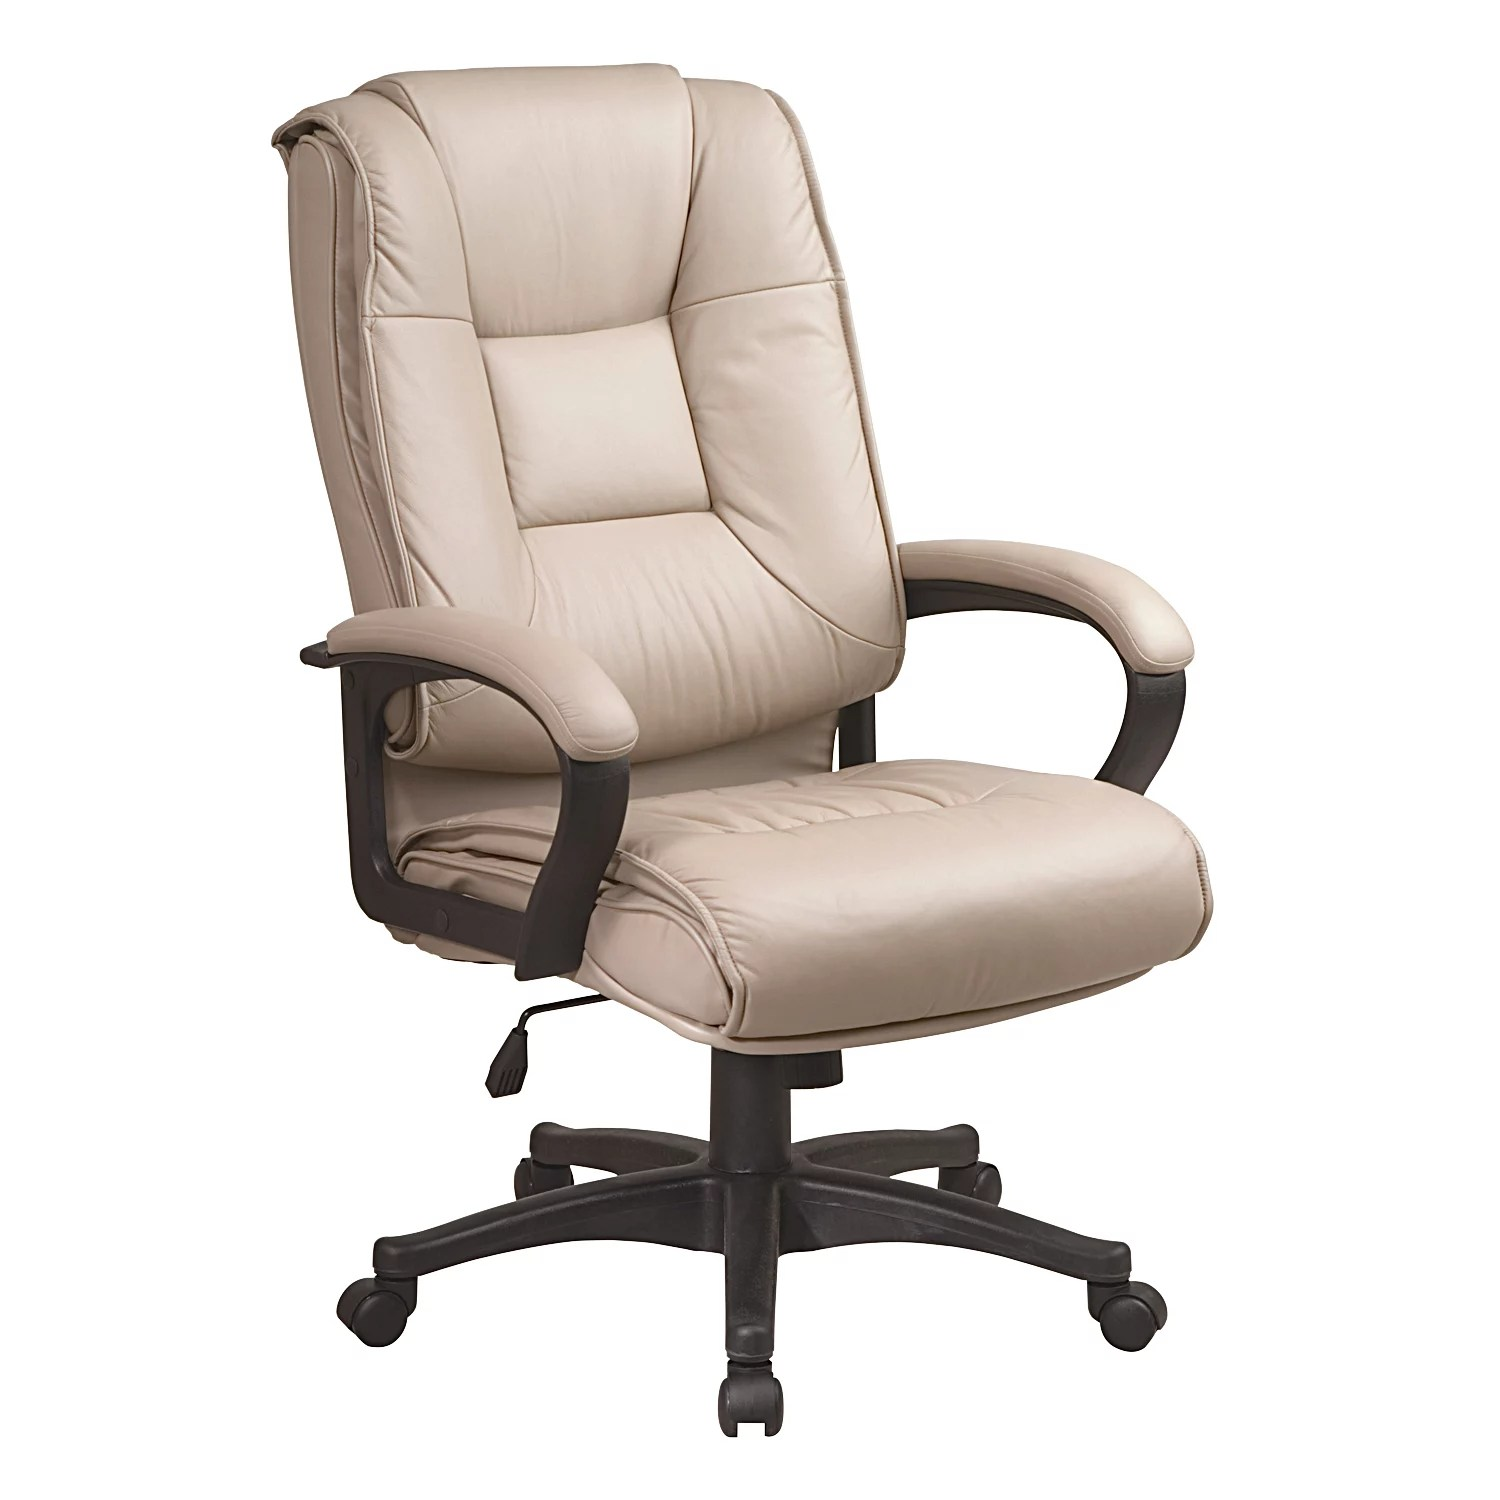 Executive Leather Chair Office Star Products Deluxe High Back Executive Leather Chair